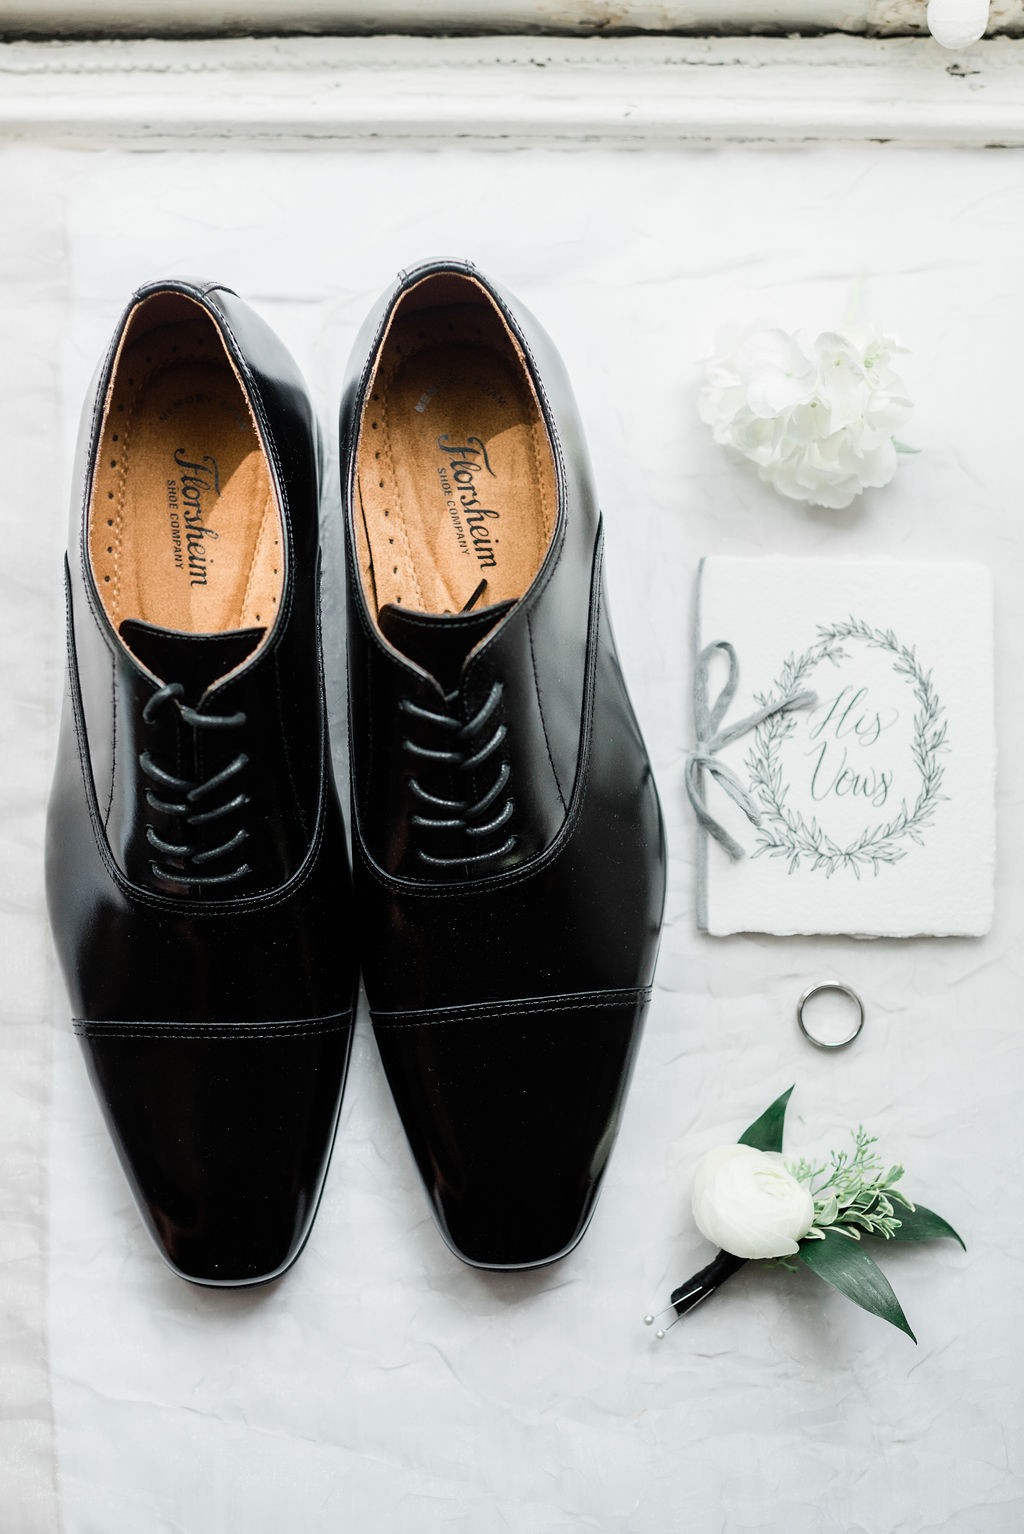 Grooms wedding shoes for Riverwood Mansion wedding captured by Maria Gloer Photography